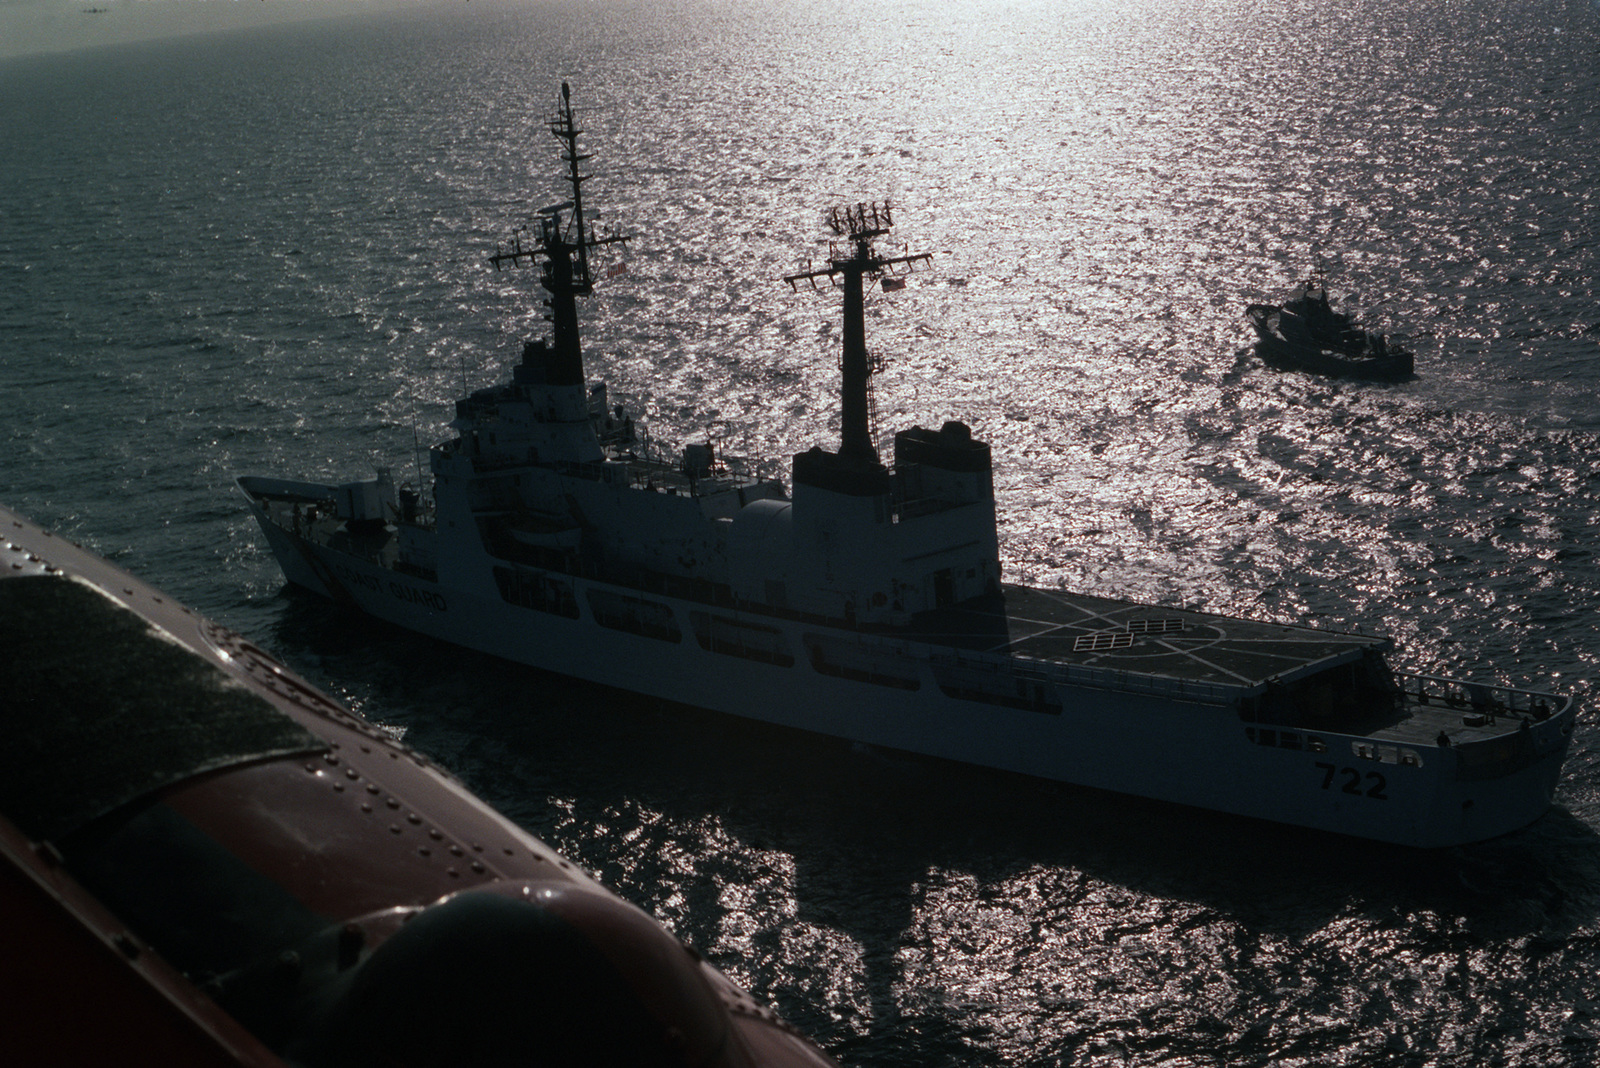 US patrol ship Morgenthau is scheduled to be transferred to Vietnam